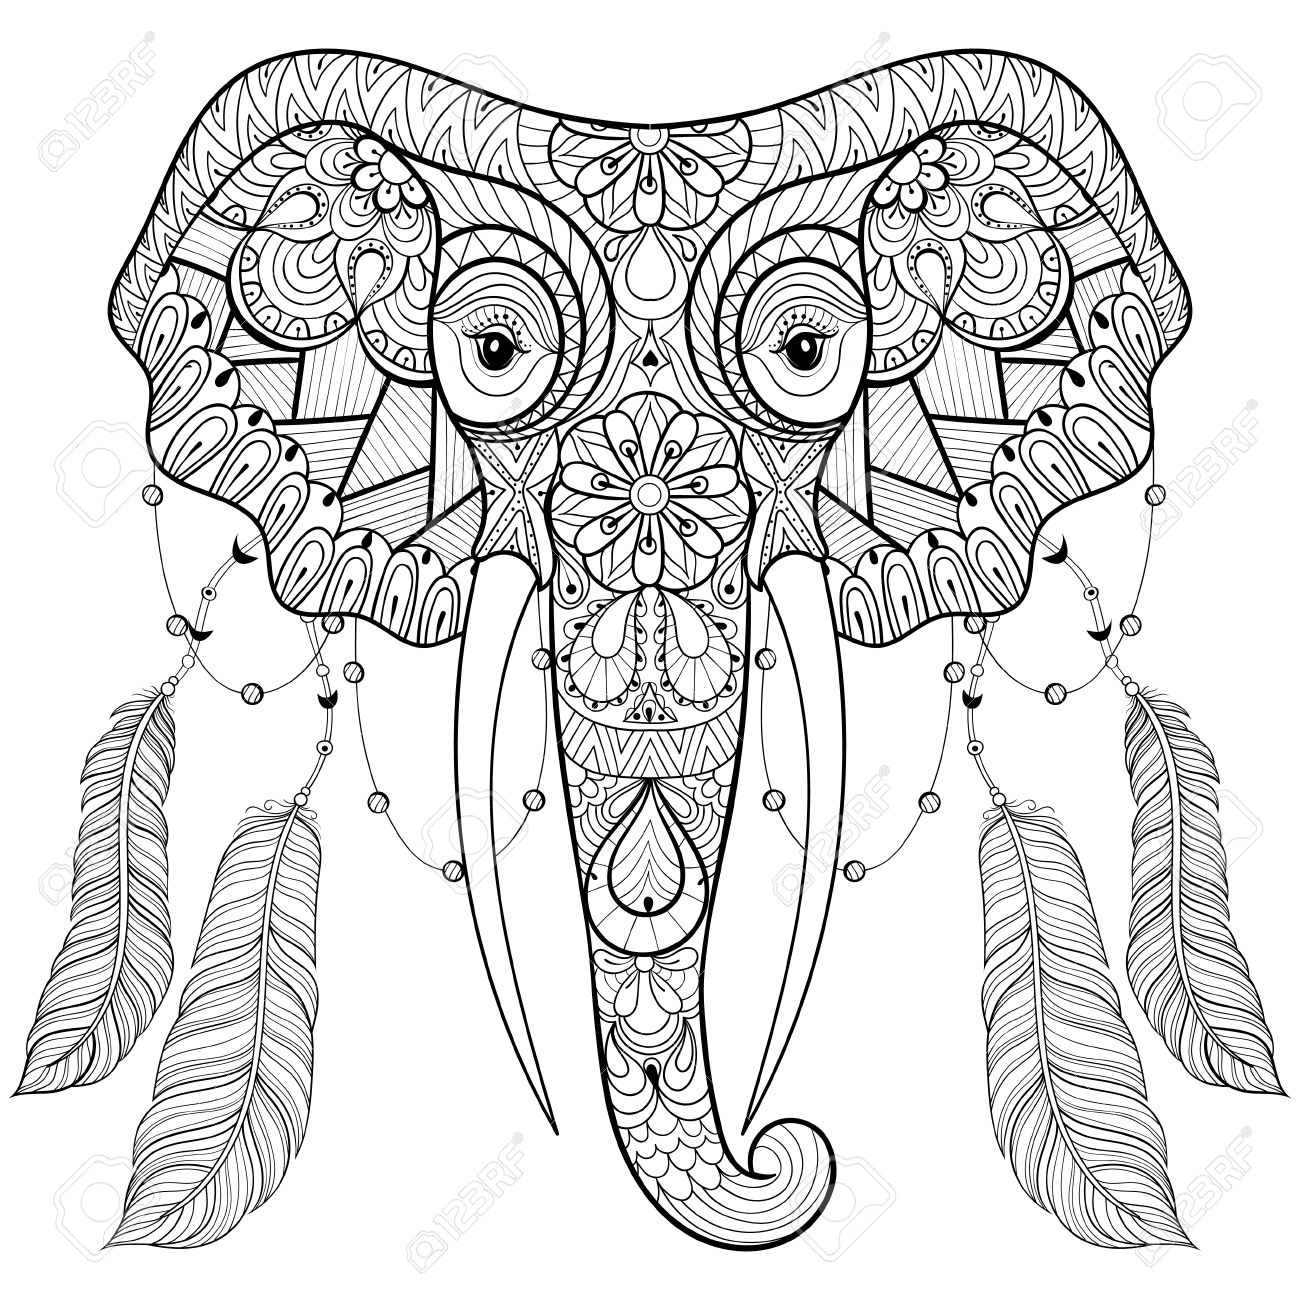 boho birds coloring pages boho fish coloring page boho bird ideas retro bird coloring page zentangle indian elephant with bird feathers in boho chic style - Coloring Page Zentangle